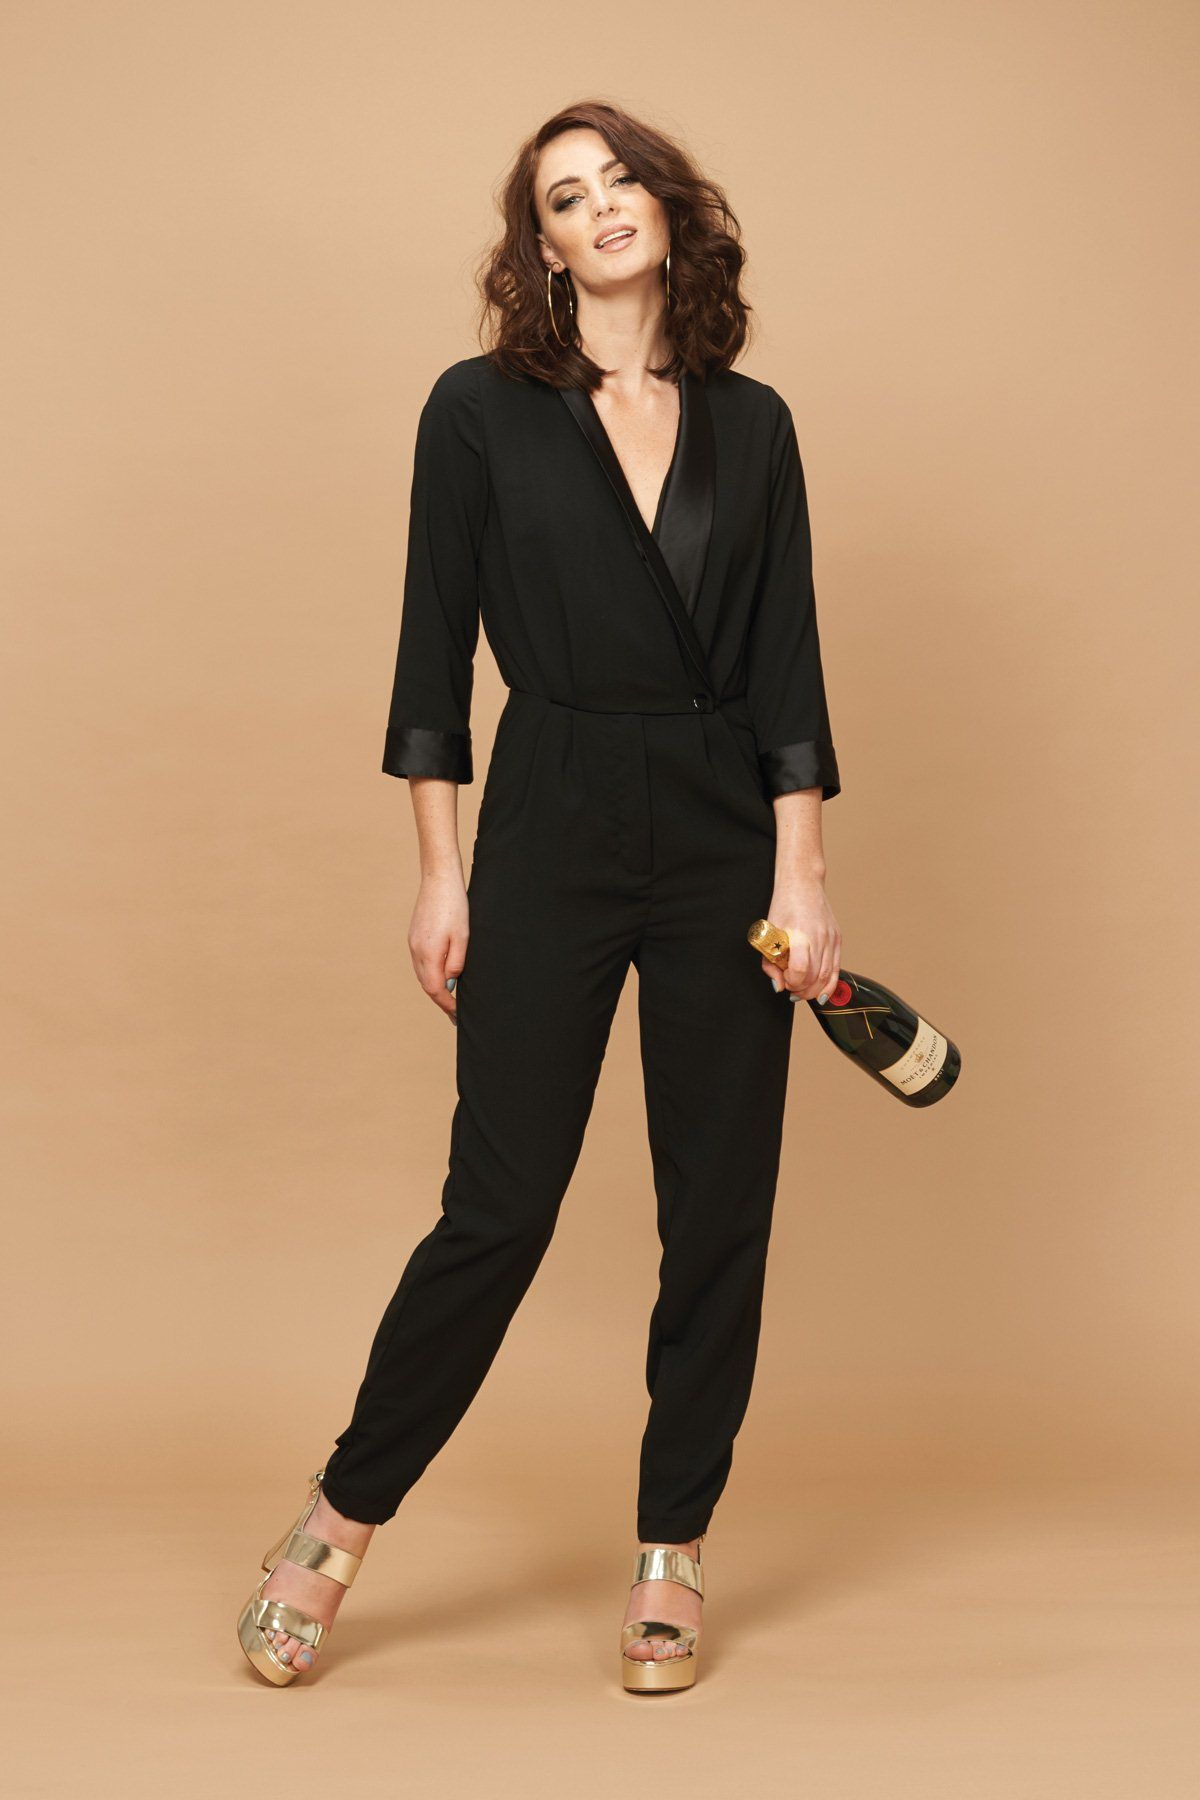 New Years Outfit SORTED with this ANNICA JUMPSUIT - A favourite of Audrey of style blog Frassy. Get it here > http://www.sugarhillboutique.com/xm15/annica-jumpsuit.aspx